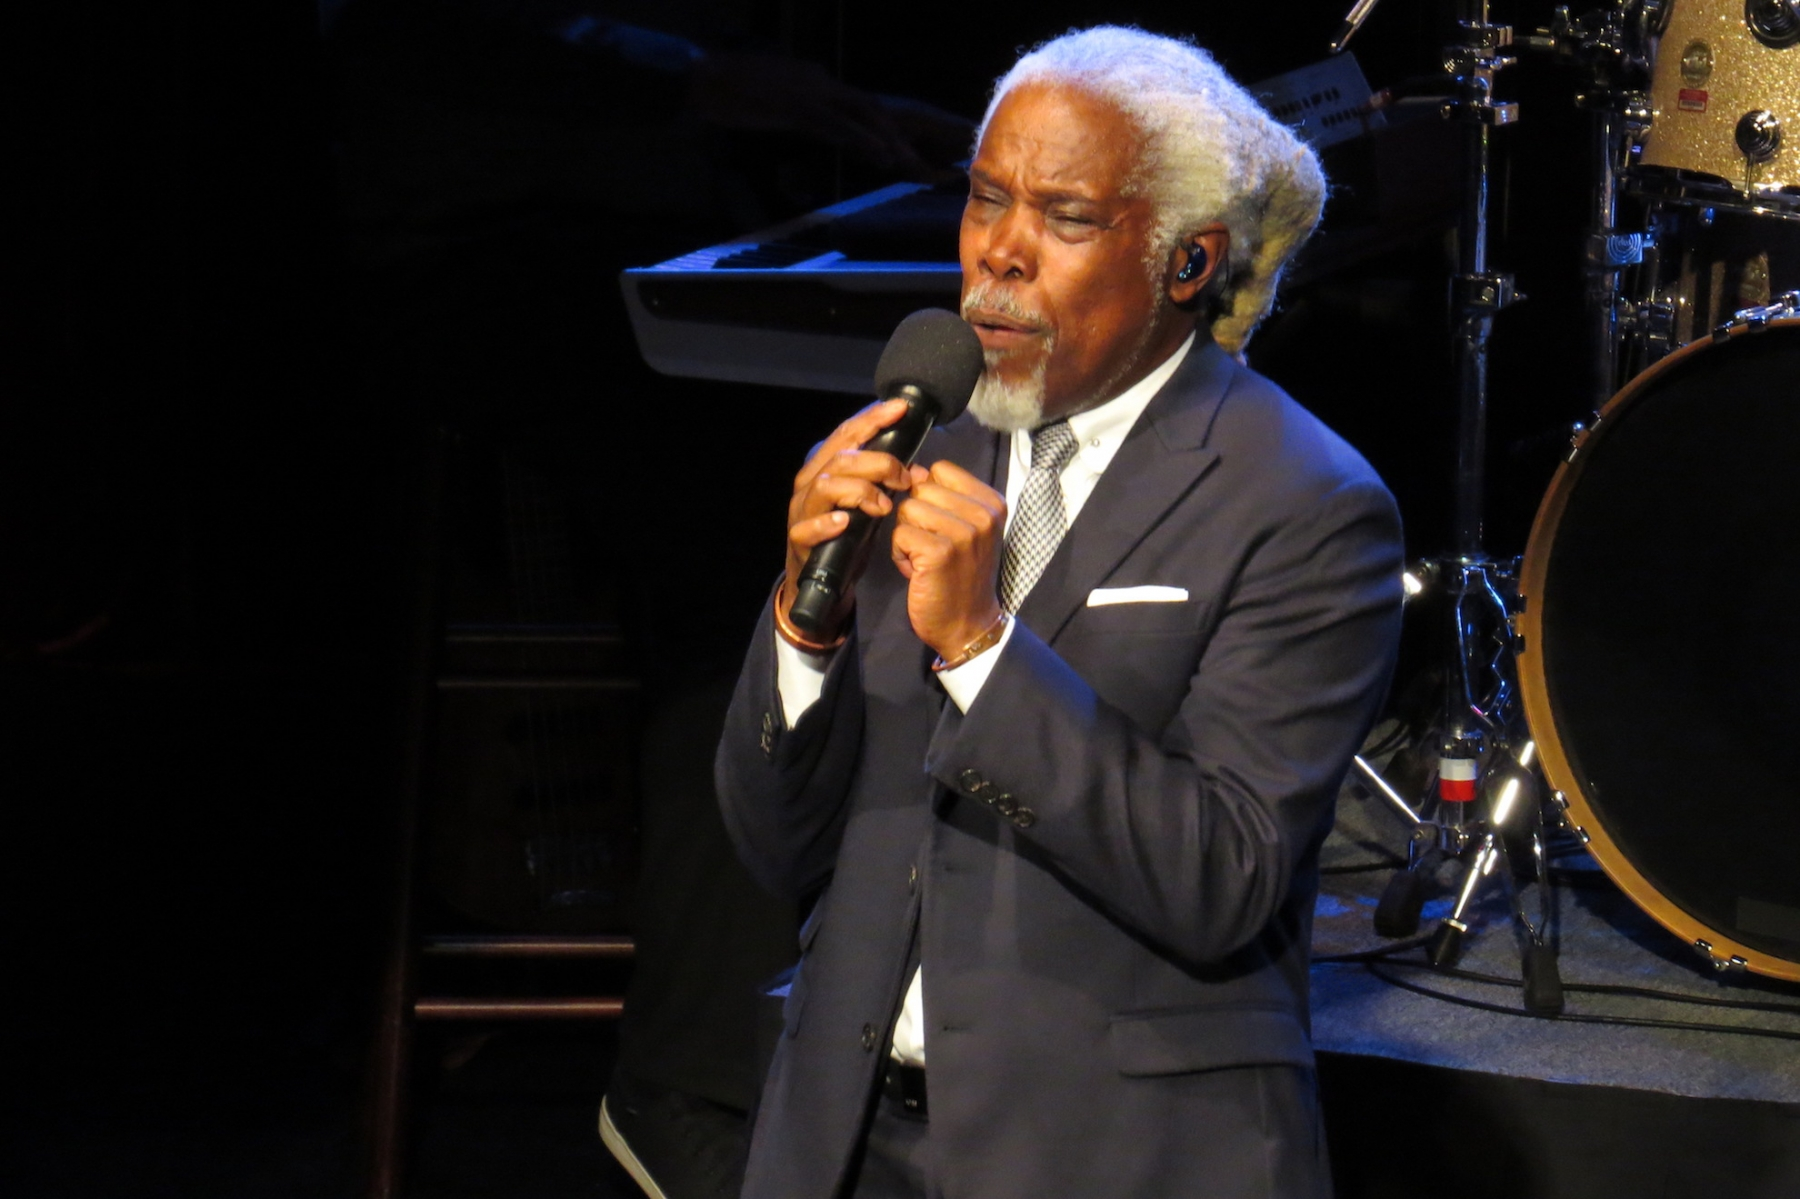 Billy Ocean performed Saturday inside the 440-seat Bear's Den Showroom at Seneca Niagara Resort & Casino in downtown Niagara Falls.